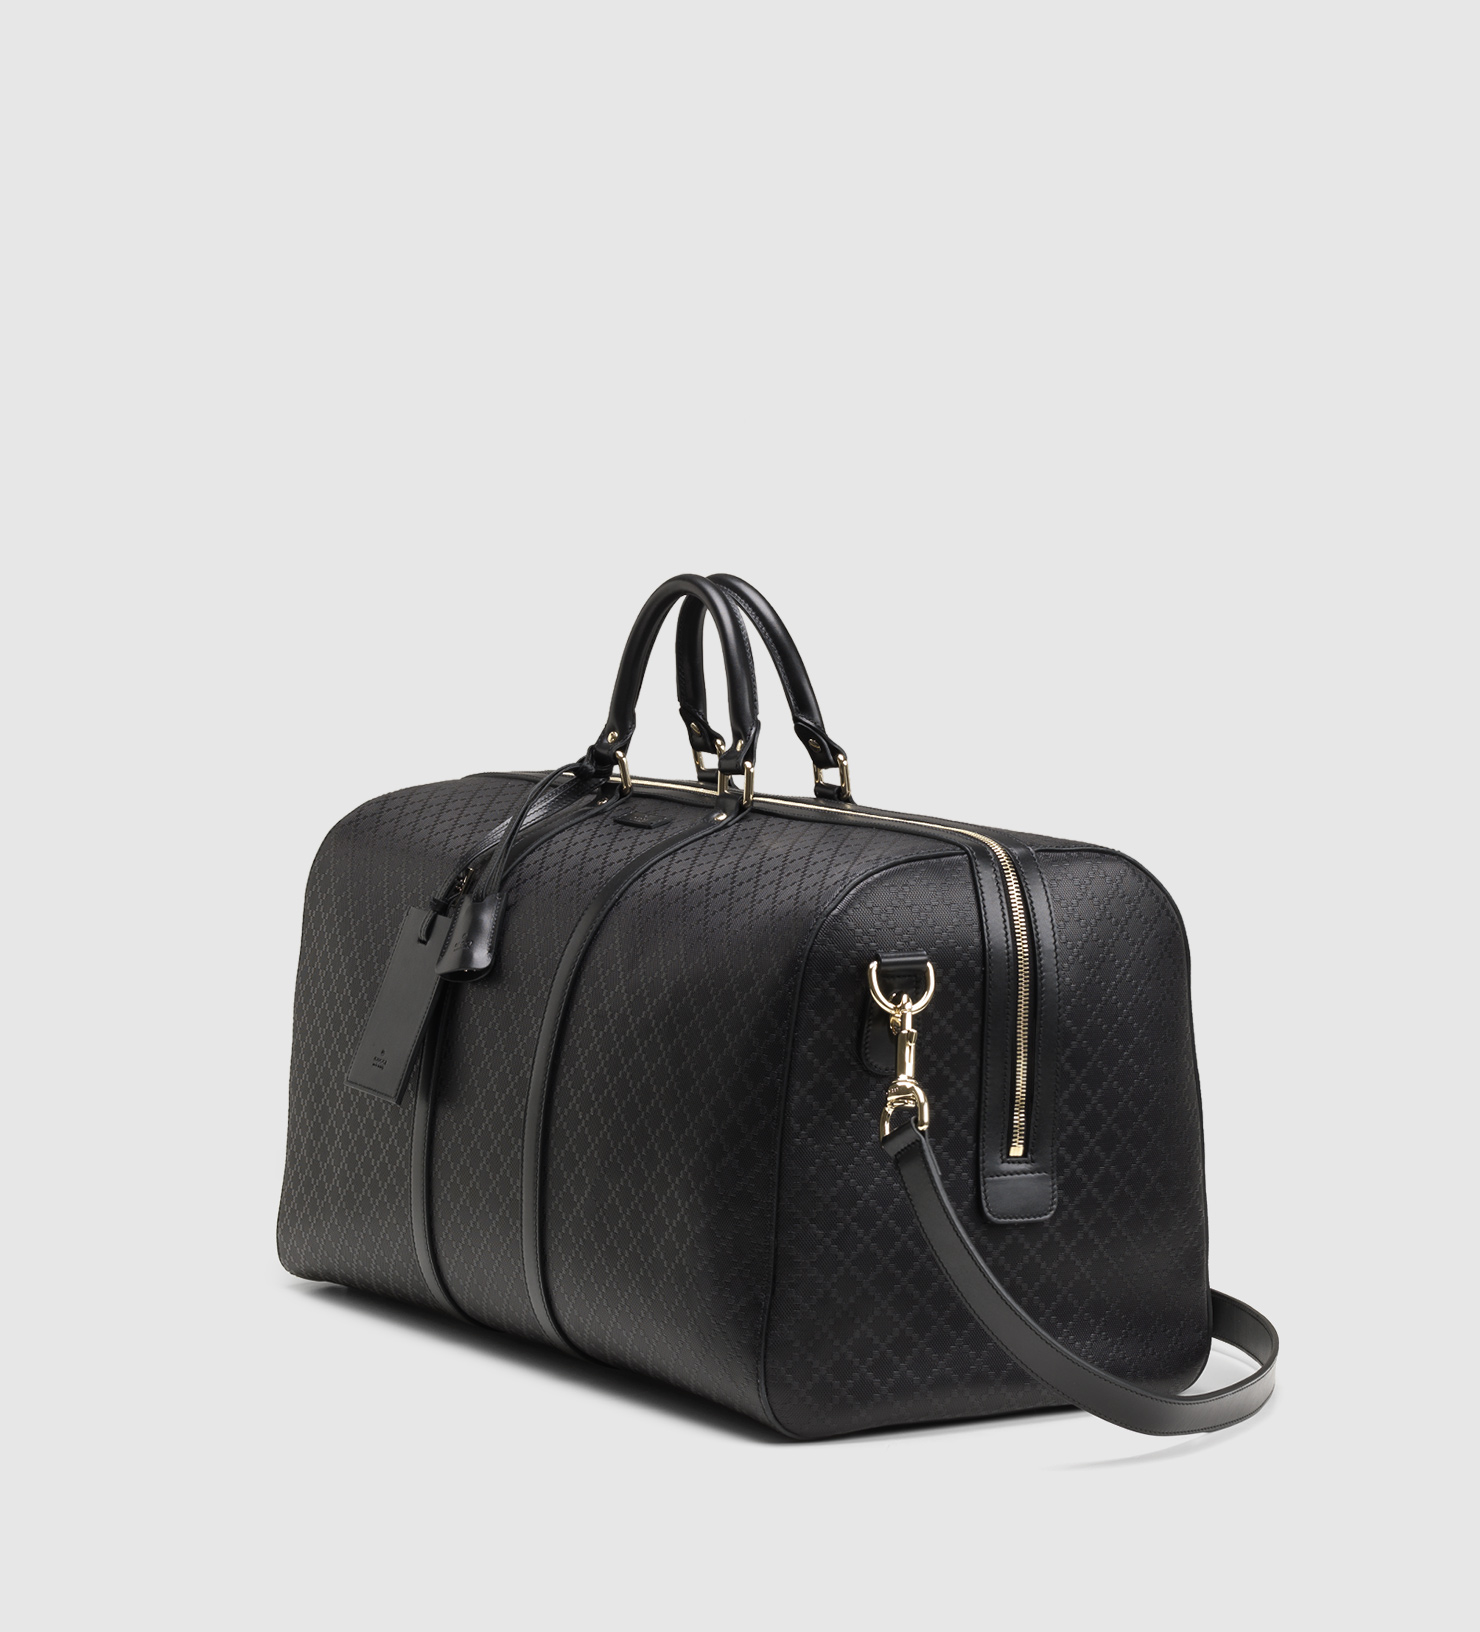 36c0c18f1bd Lyst - Gucci Bright Diamante Leather Carry-on Duffle Bag in Black ...